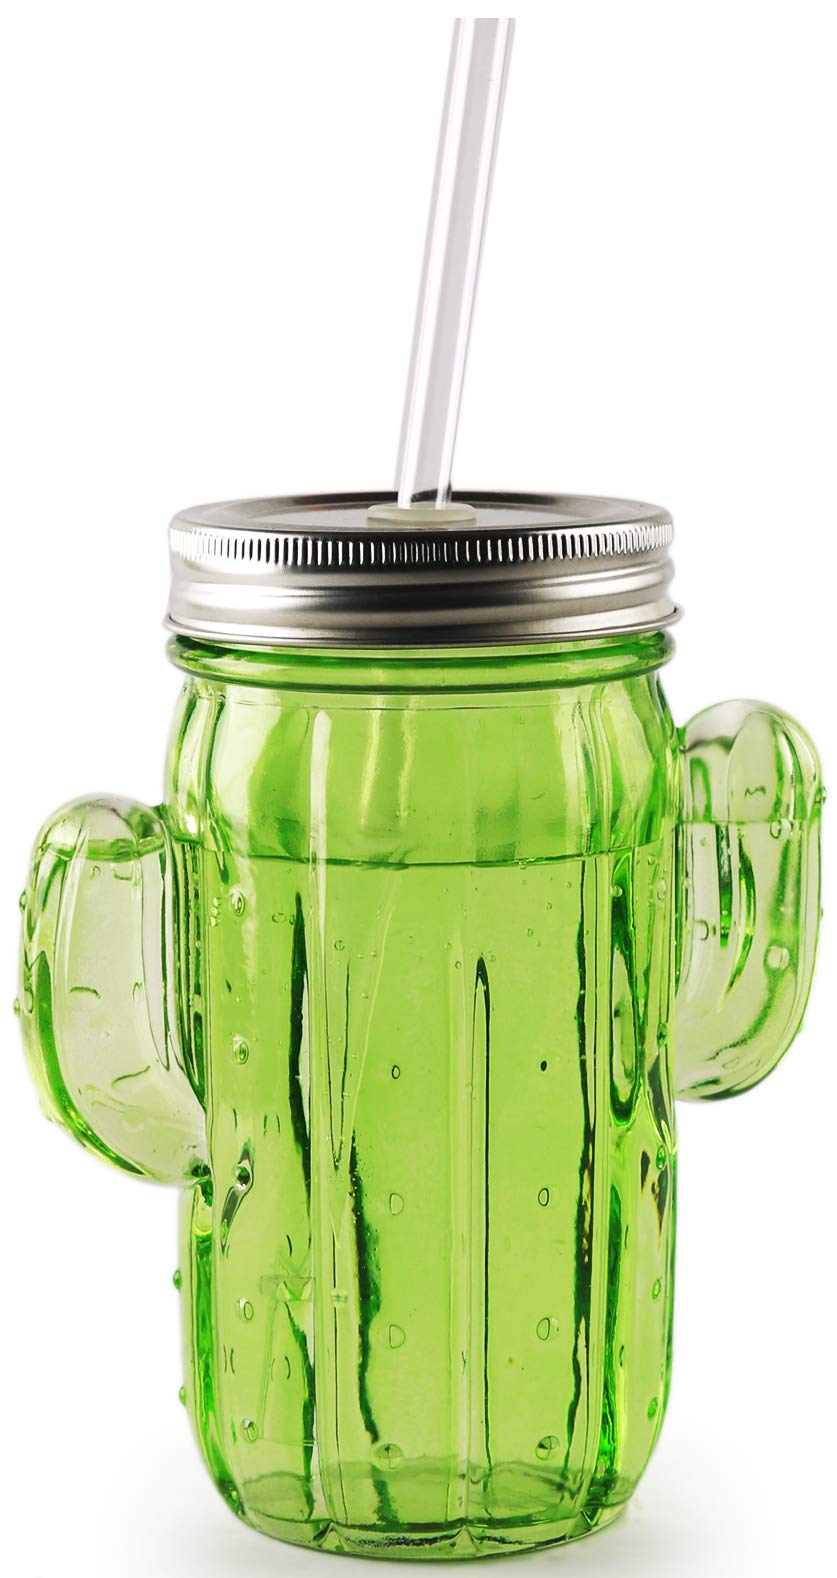 Circleware Green Glass Cactus Mason Sipper with Metal Lid and Straw, Set of 4, 15.5 Oz by Circleware (Image #1)